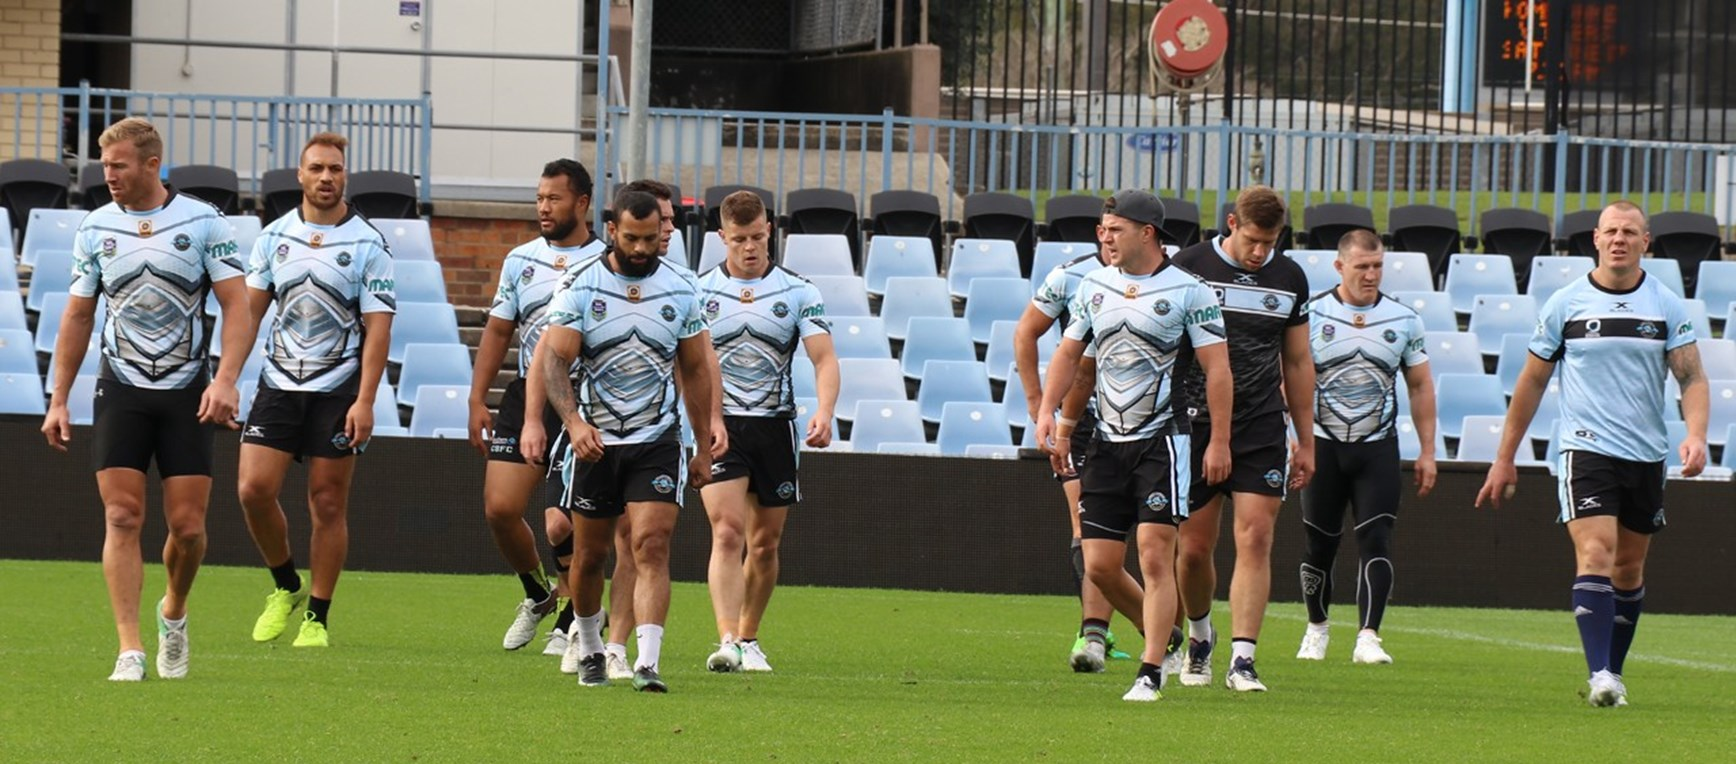 Captains Run Gallery